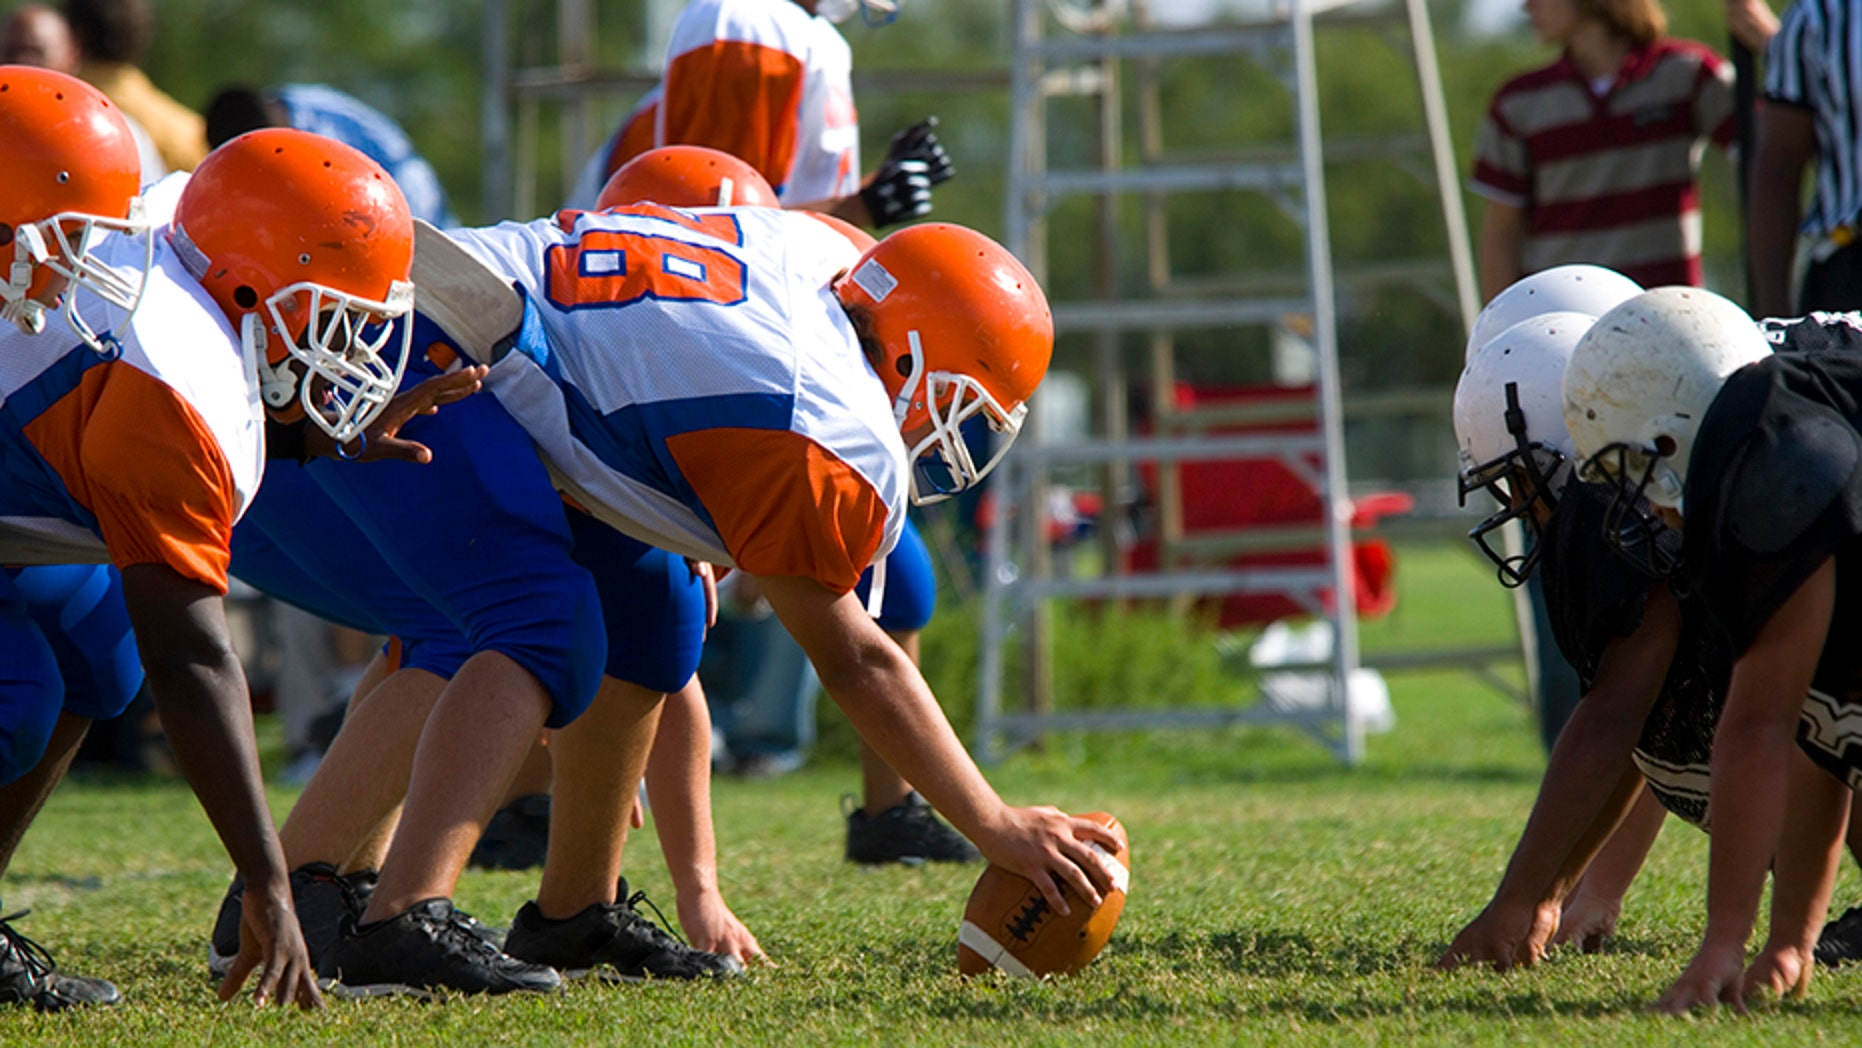 A proposal aimed at delaying the effects of helmet-banging head trauma by banning Illinois children younger than 12 from playing tackle football lacks the votes this spring. Legislation similar is in play in New York, New Jersey, and California. Last month, a Maryland House committee voted down a prohibition on tackling before age 14.